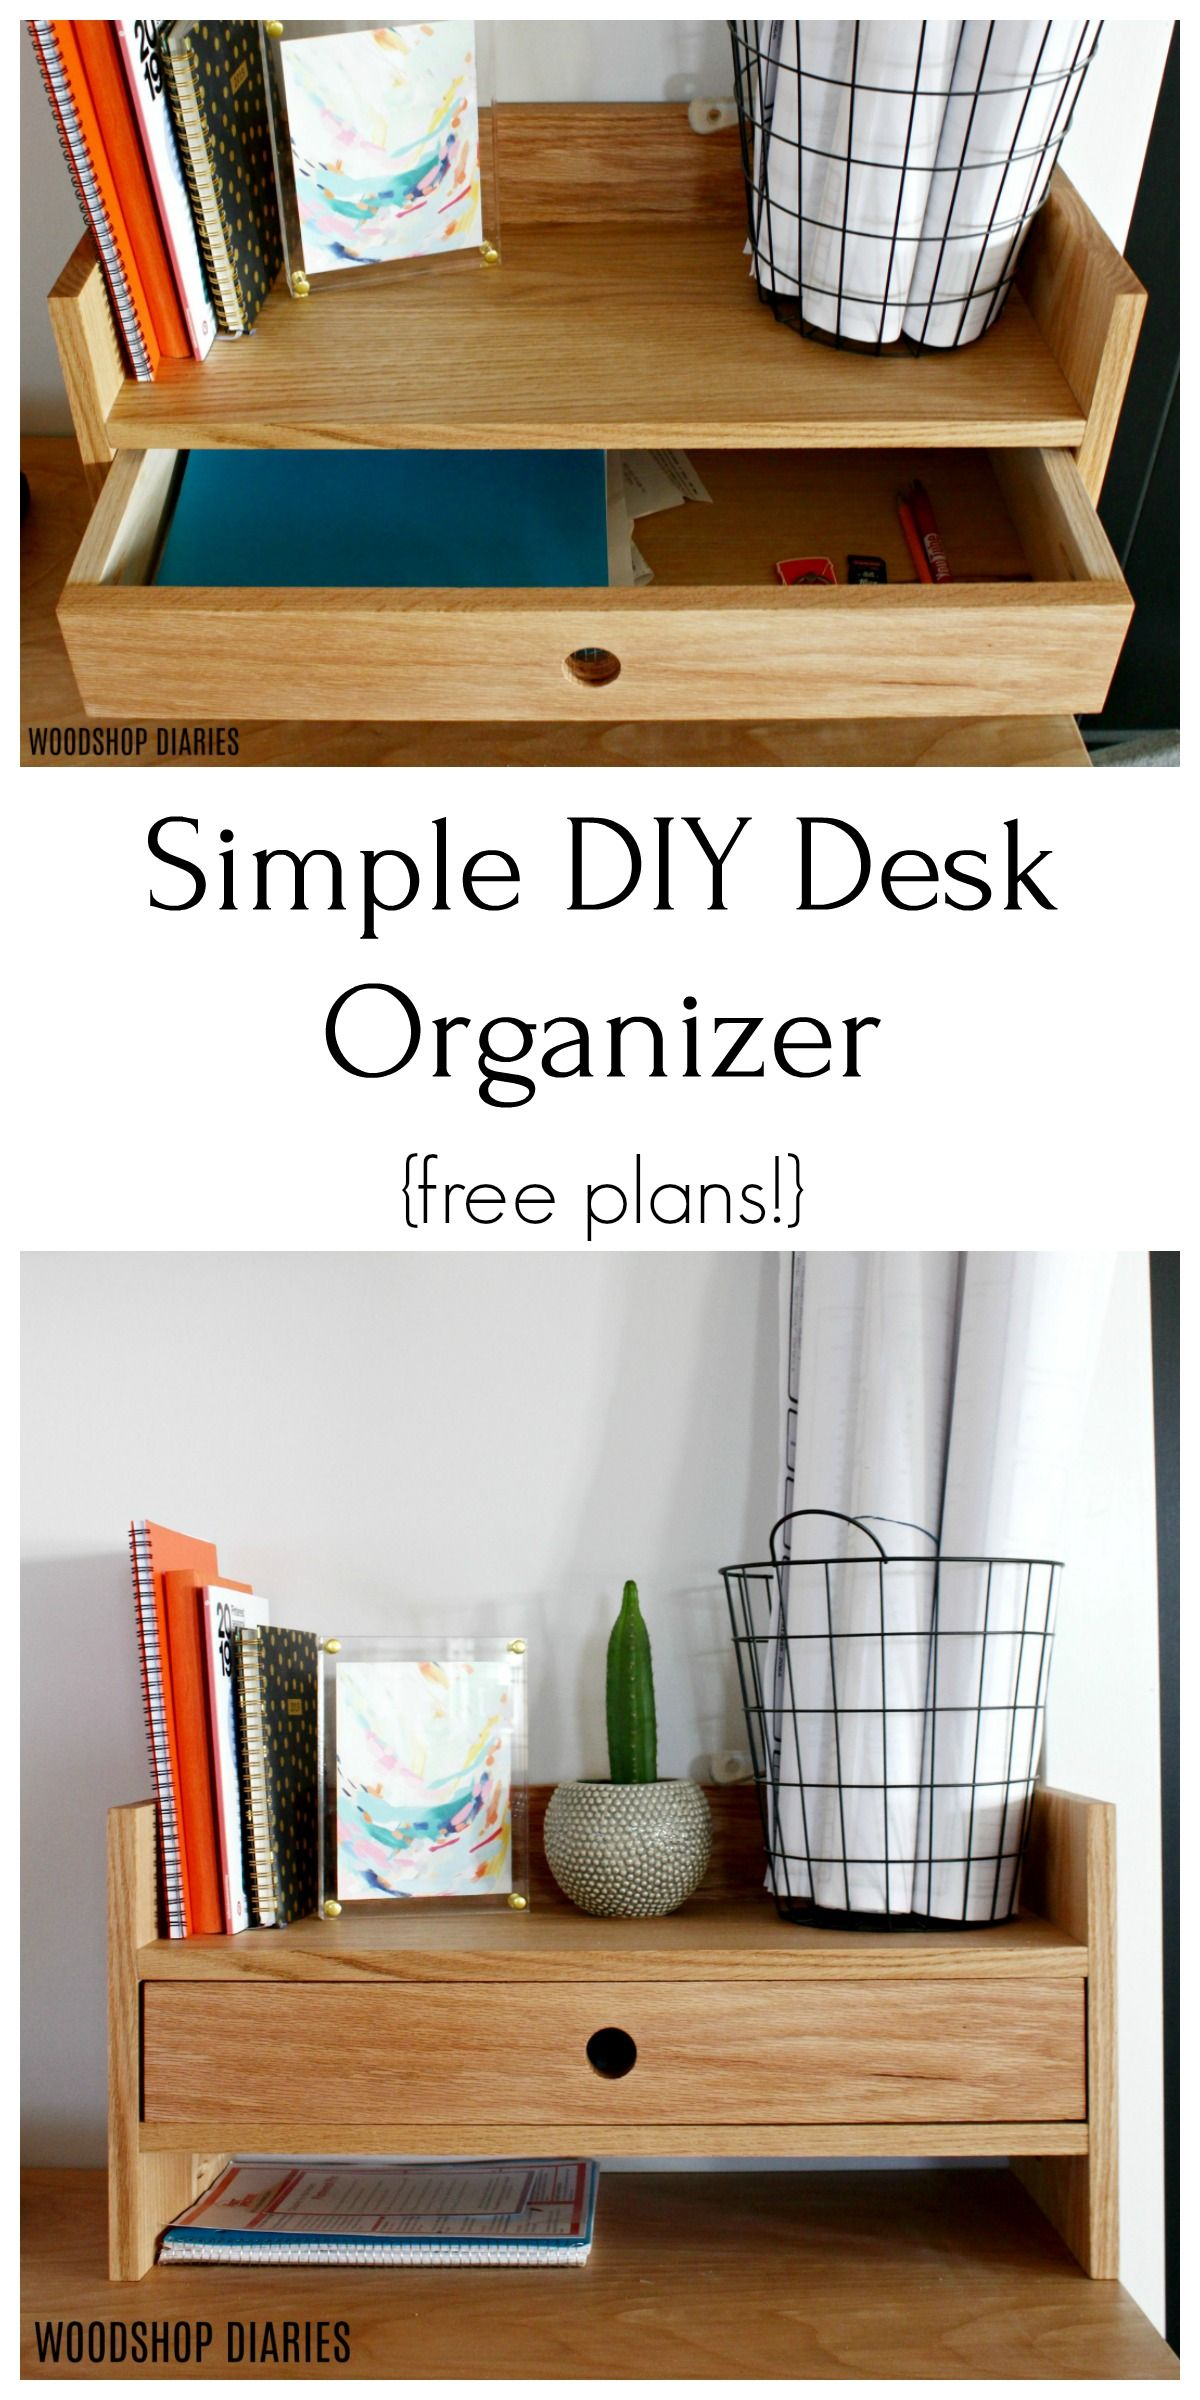 Simple Diy Desk Organizer In 2020 Desk Organization Diy Small Desk Organization Diy Wood Desk